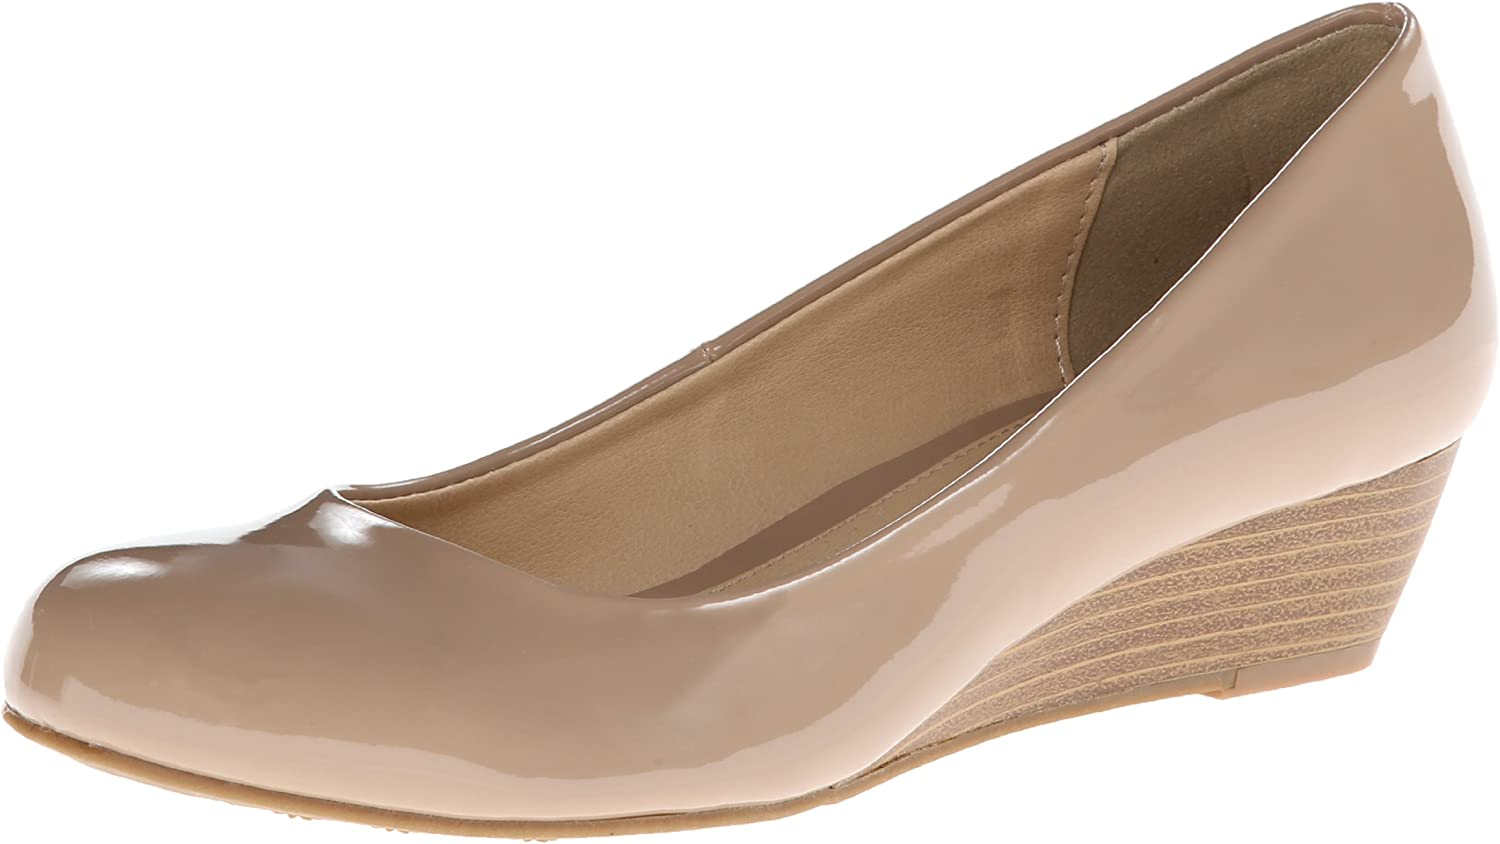 CL by Chinese Laundry Women's Marcie Wedge Pump